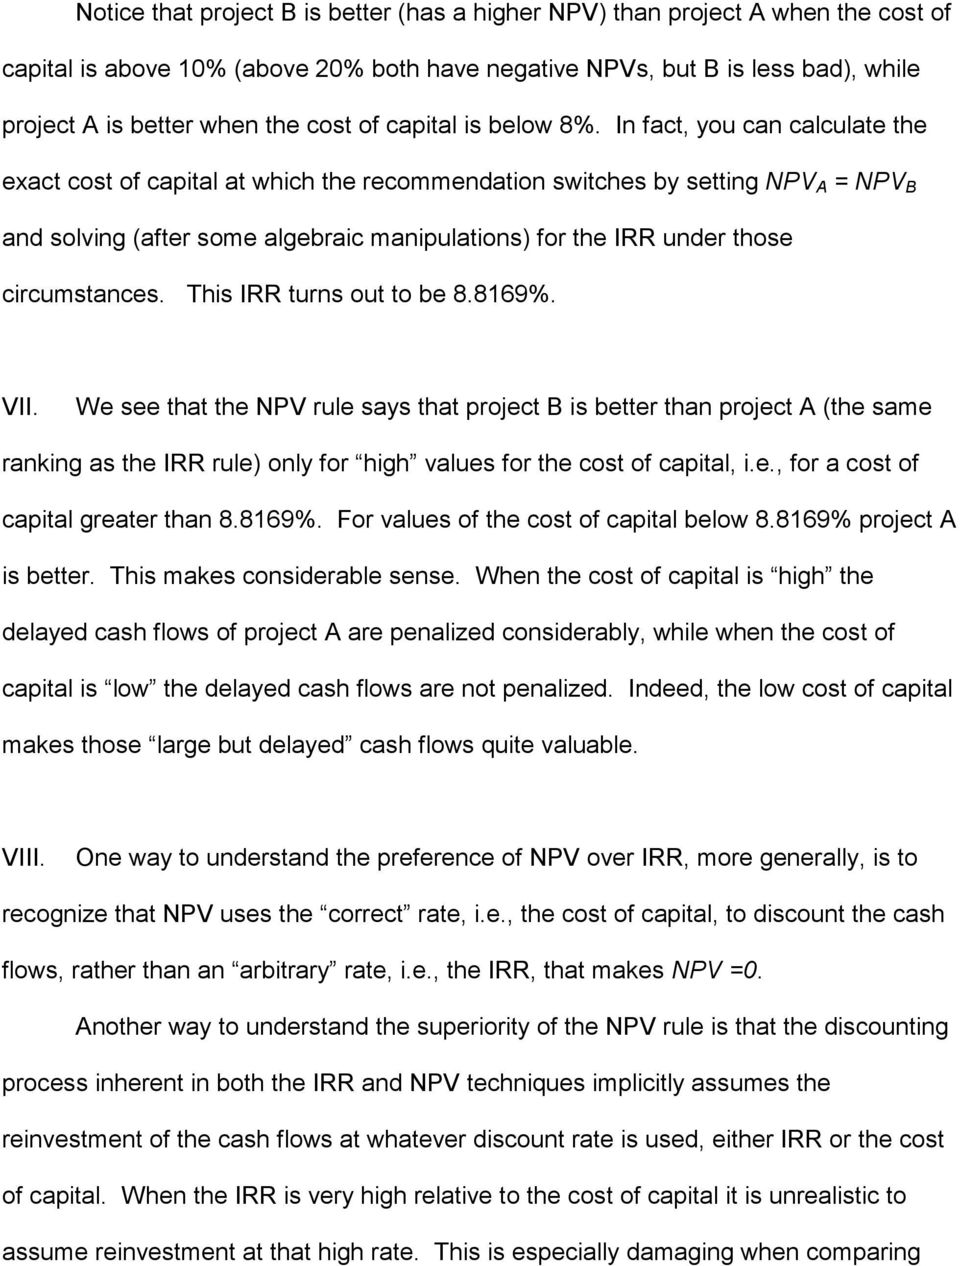 In fact, you can calculate the exact cost of capital at which the recommendation switches by setting NPV A = NPV B and solving (after some algebraic manipulations) for the IRR under those